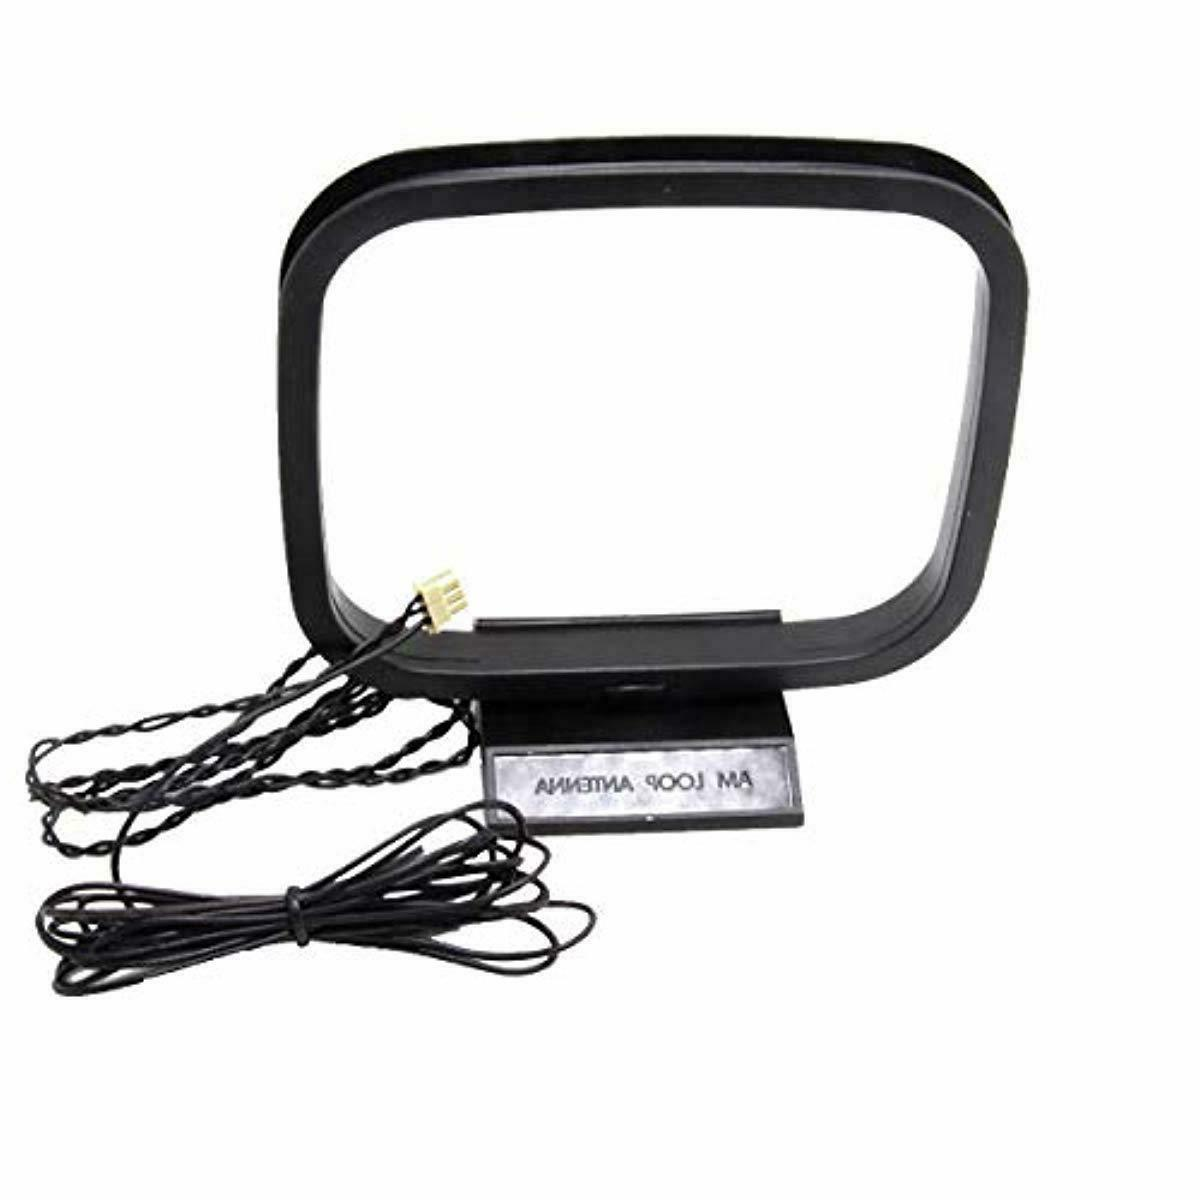 Ancable and AM Loop Antenna Mini for Sony